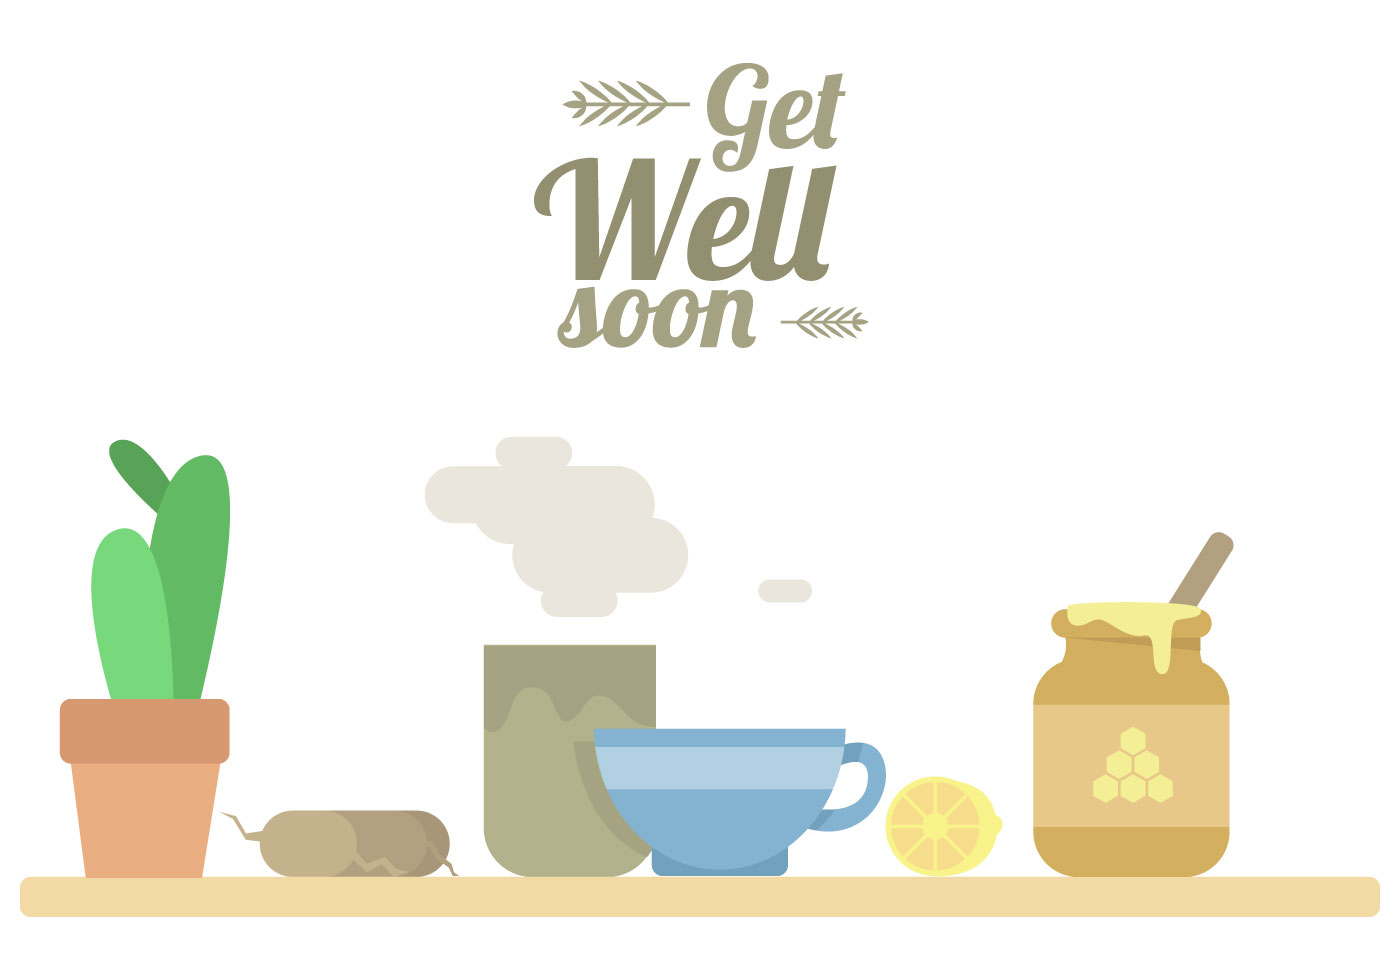 Get Well Soon Cards Free Vector Art 19571 Free Downloads